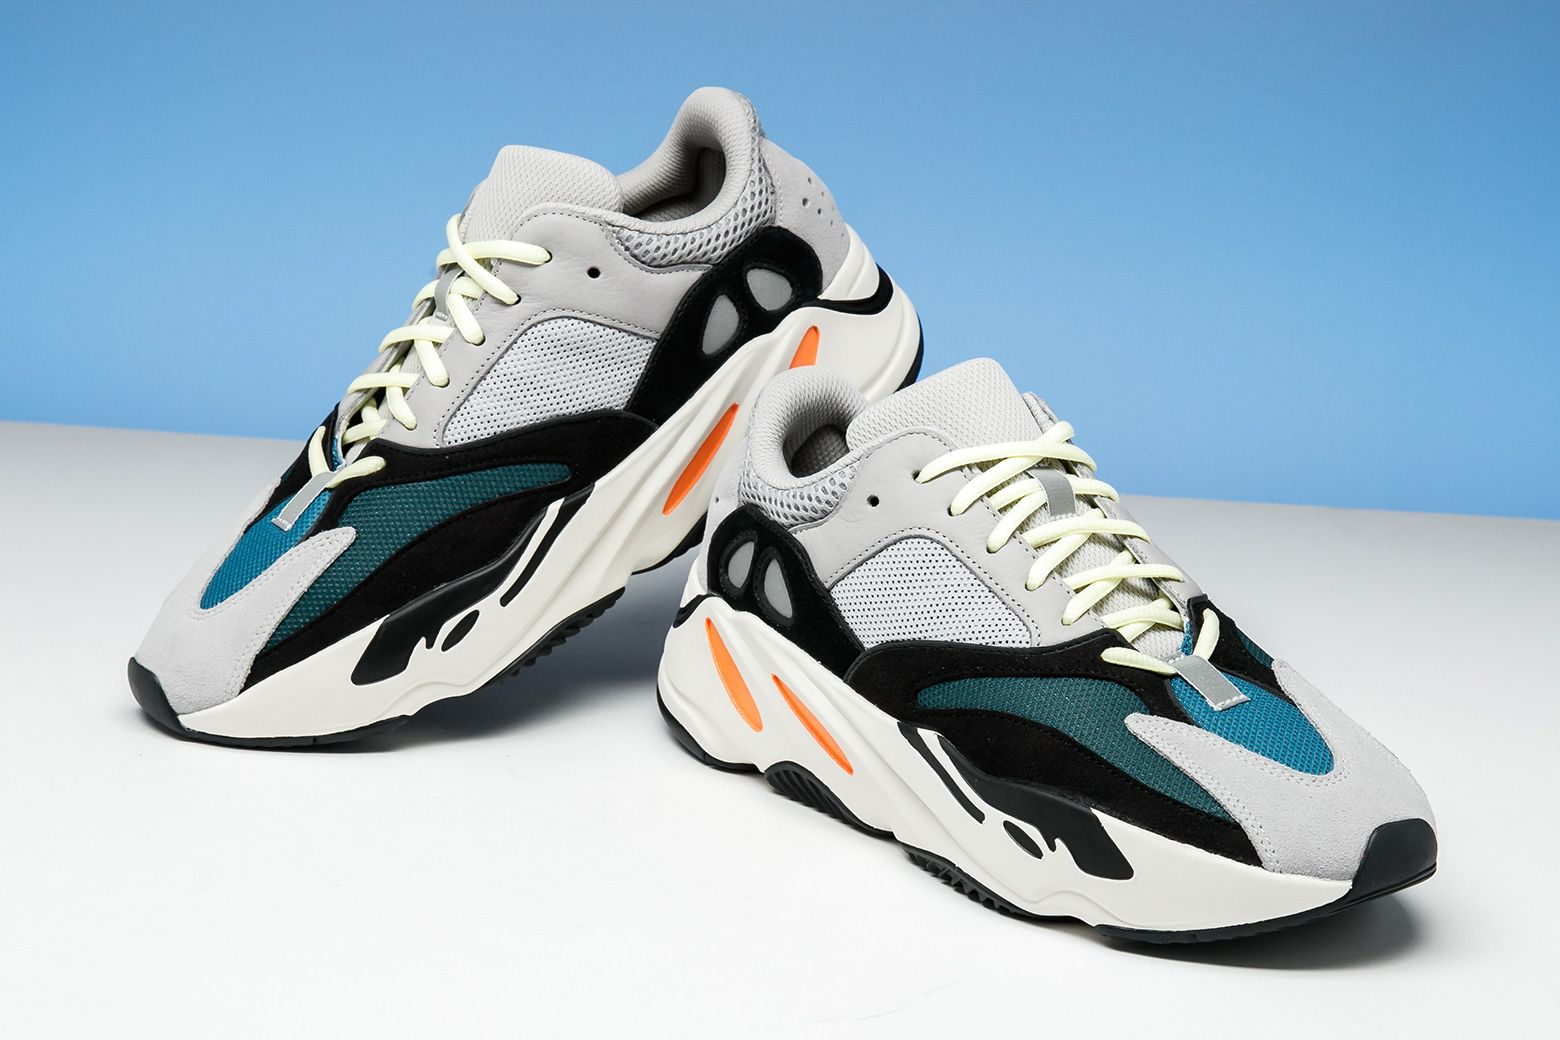 separation shoes 43d3b 94a6f Adidas Yeezy Boost 700